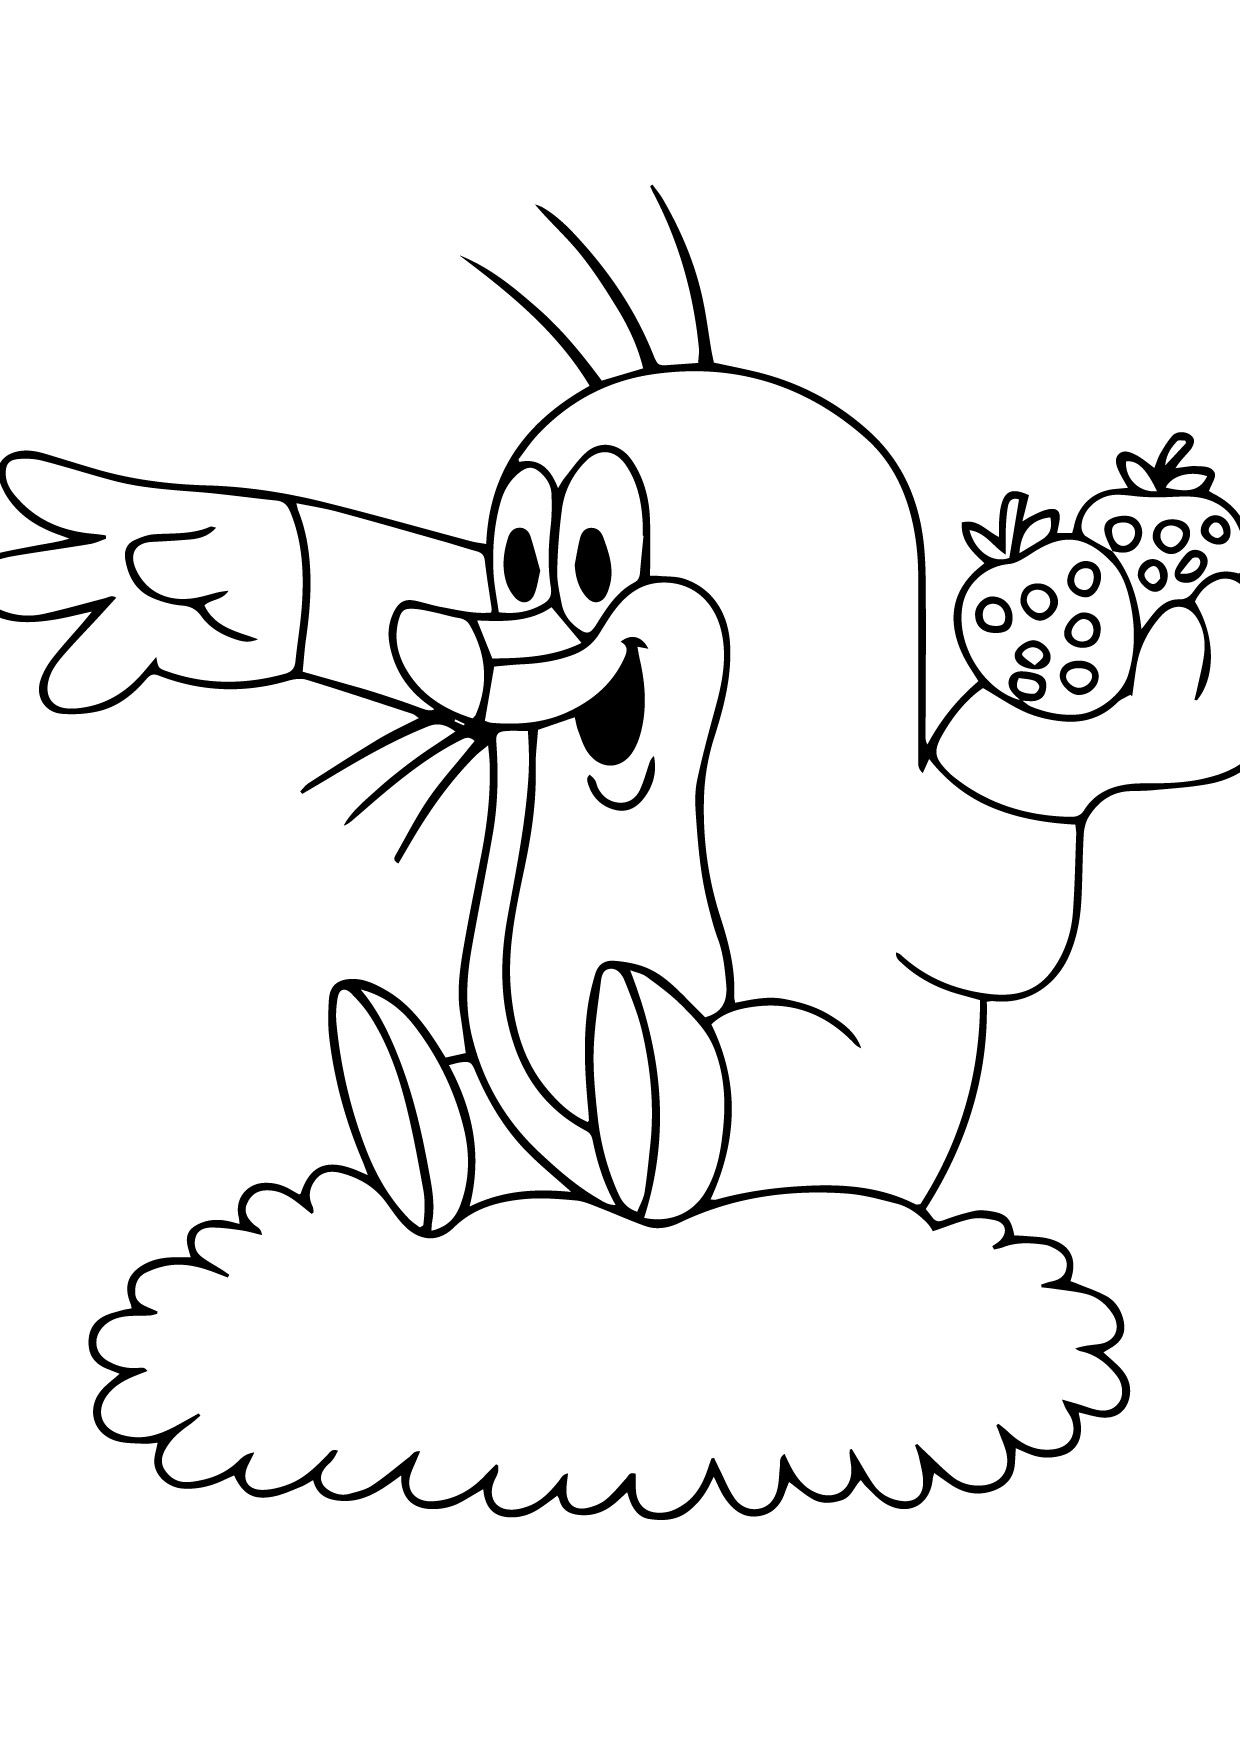 awesome Coloring Page 22-09-2015_083601-01 Check more at http://www ...